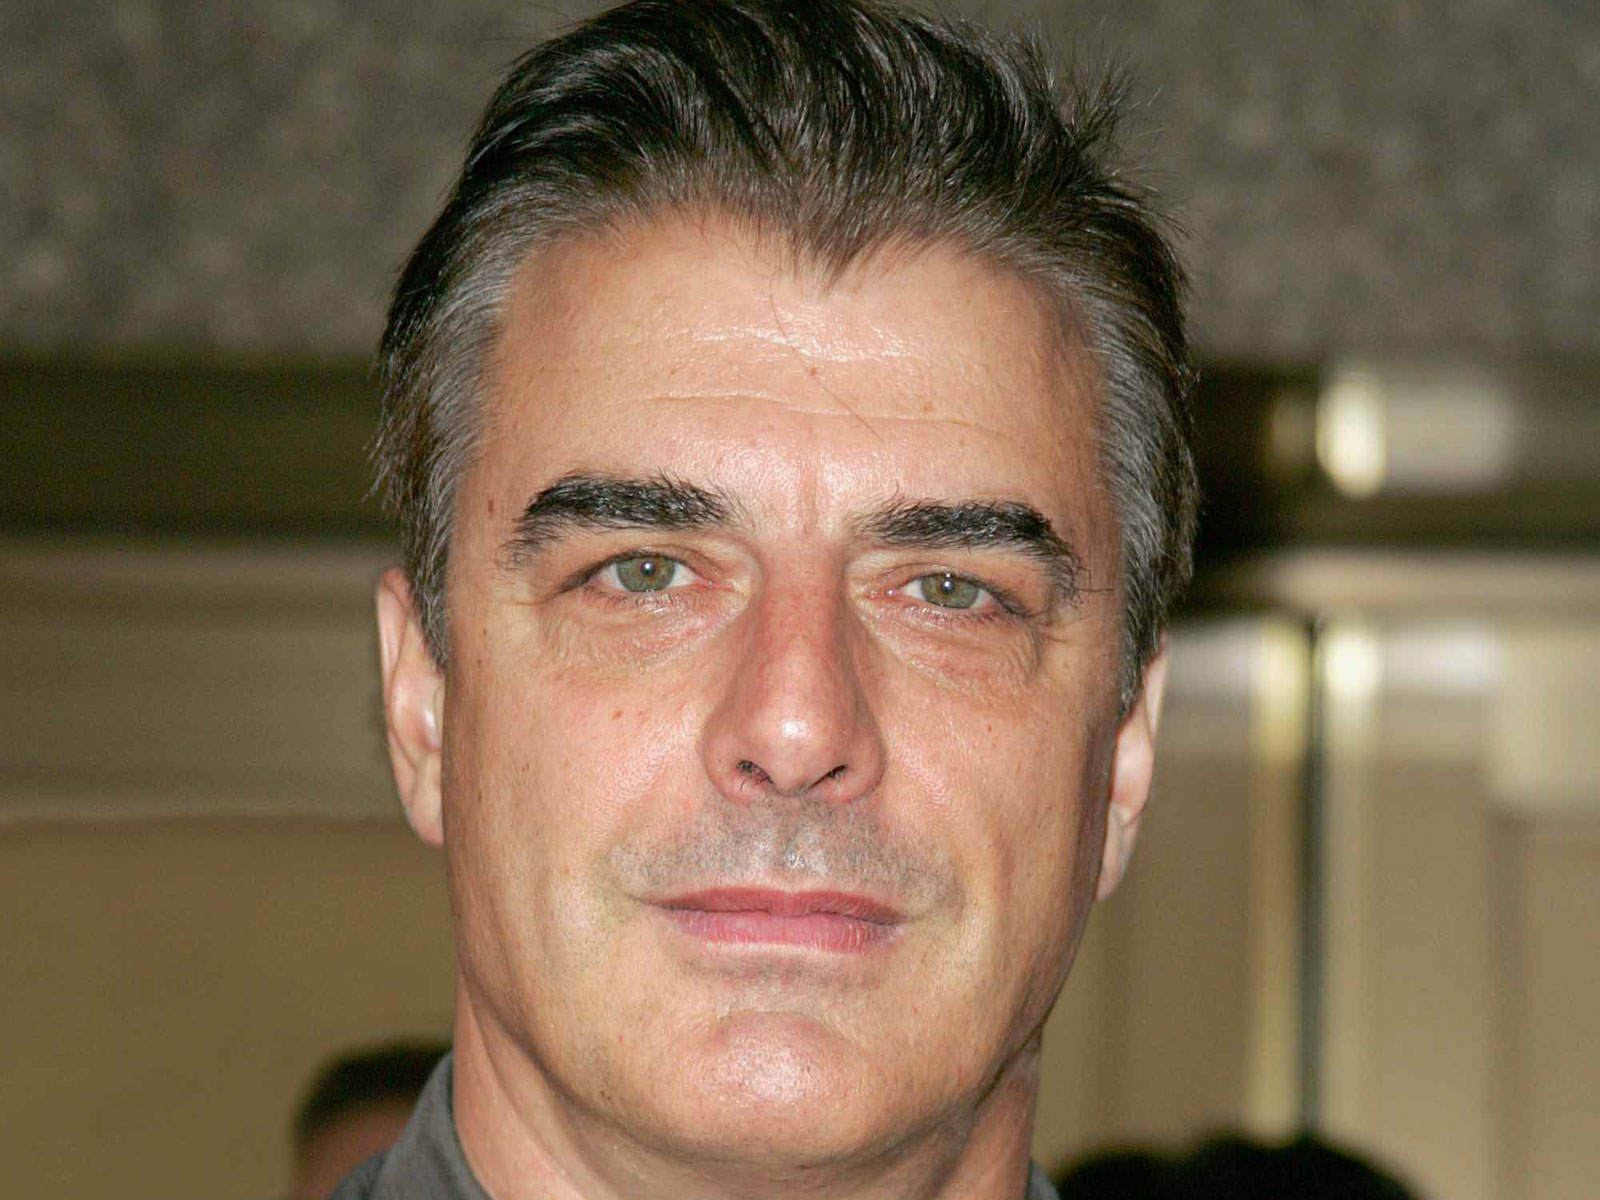 Chris noth picture image 2 contact us privacy tos actors